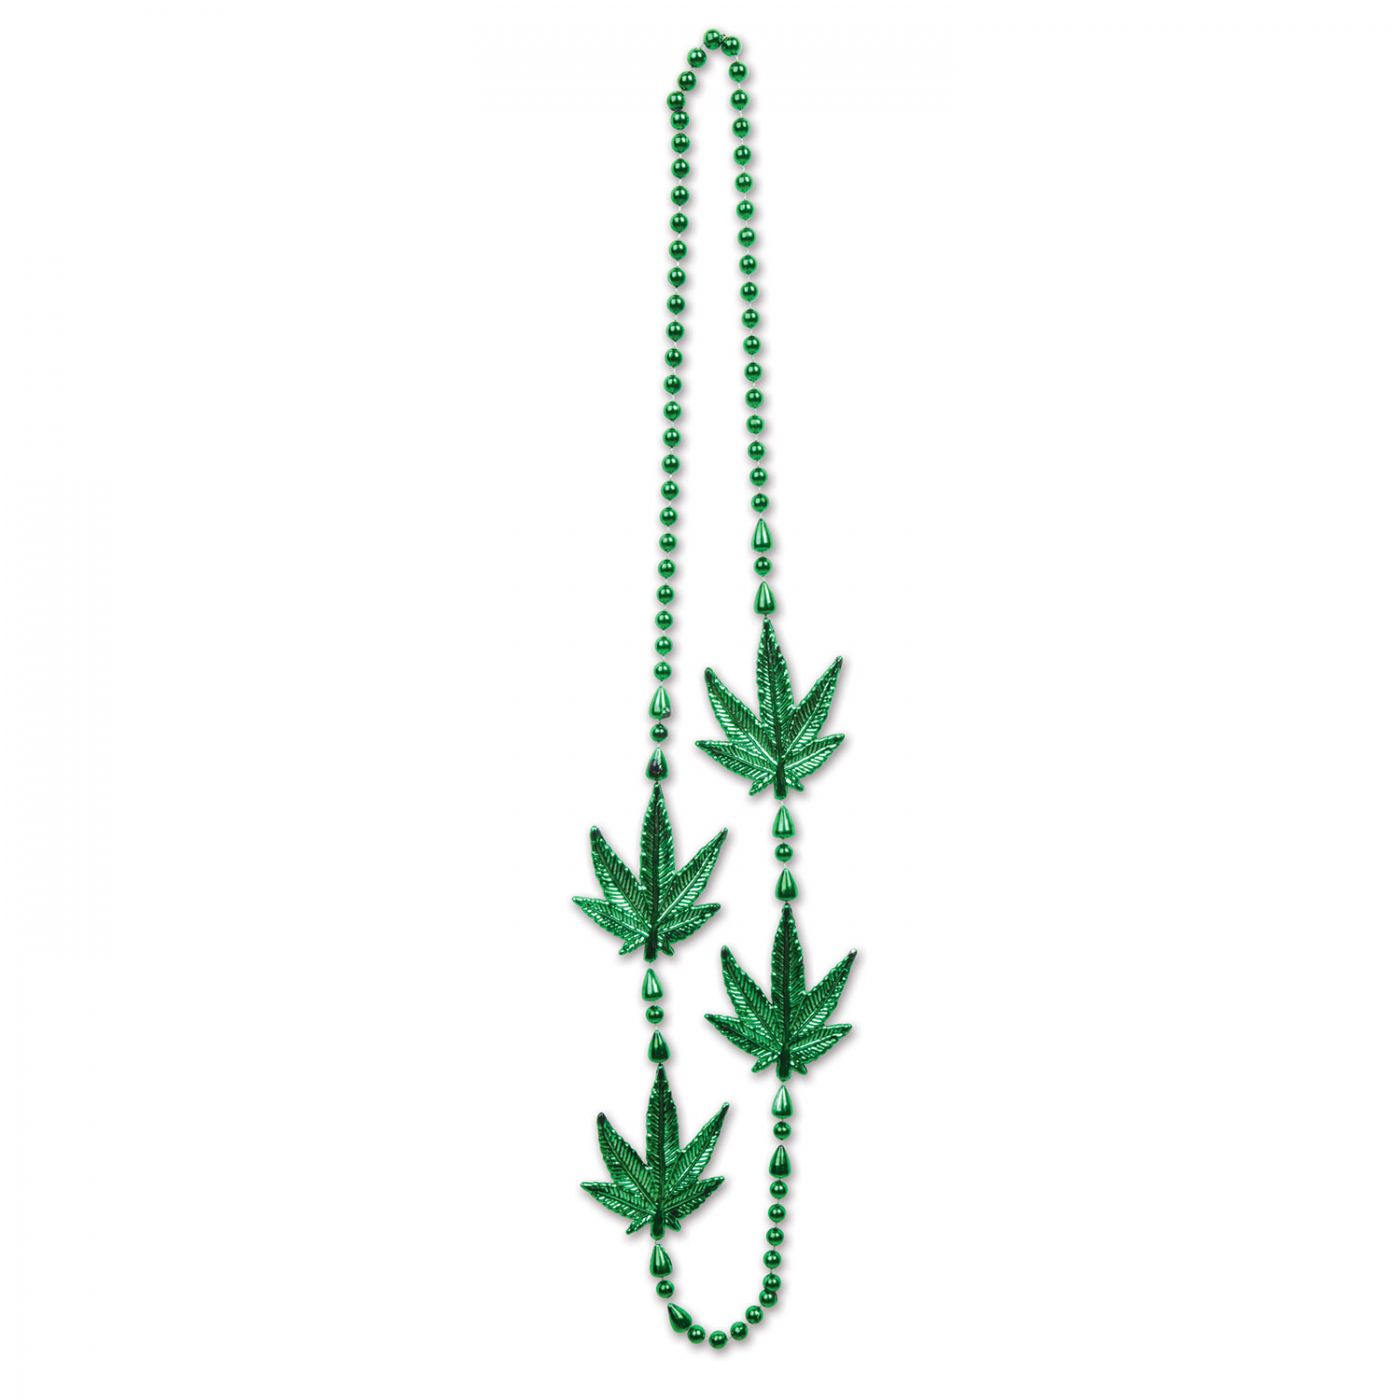 Weed Beads image